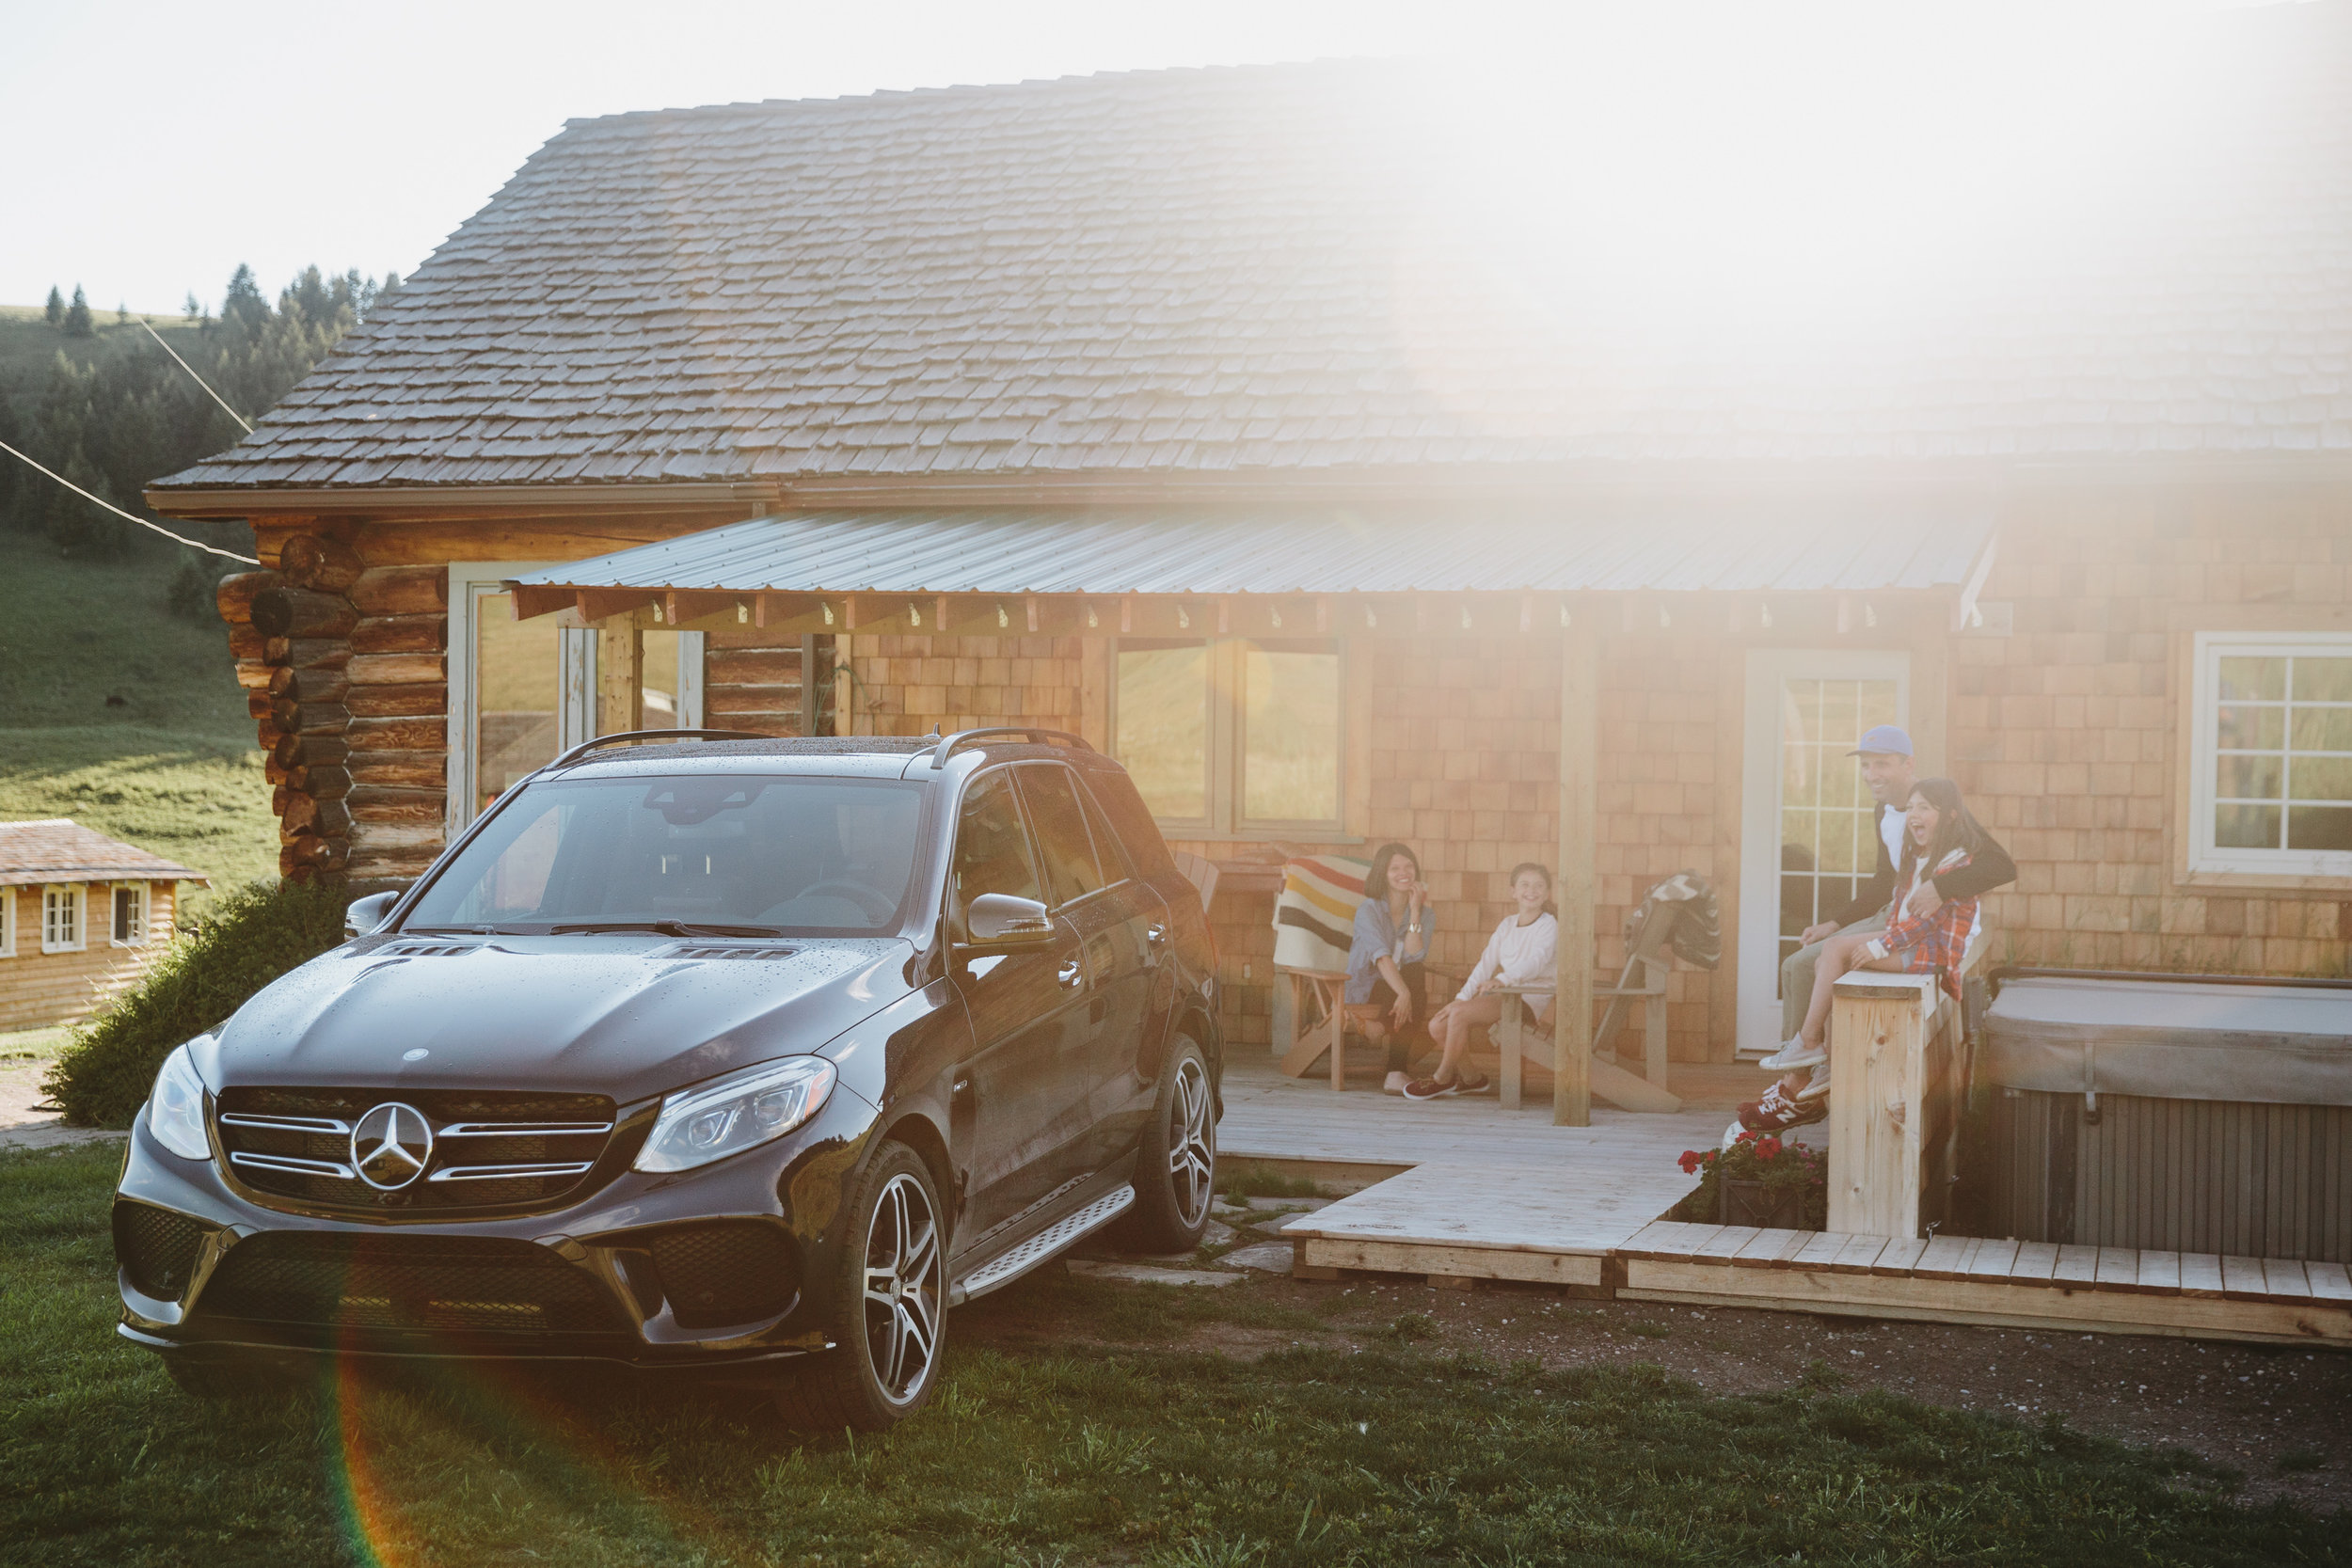 MikeSeehagel-commercial-lifestyle-photography-mercedesbenz-IMG_7765.jpg